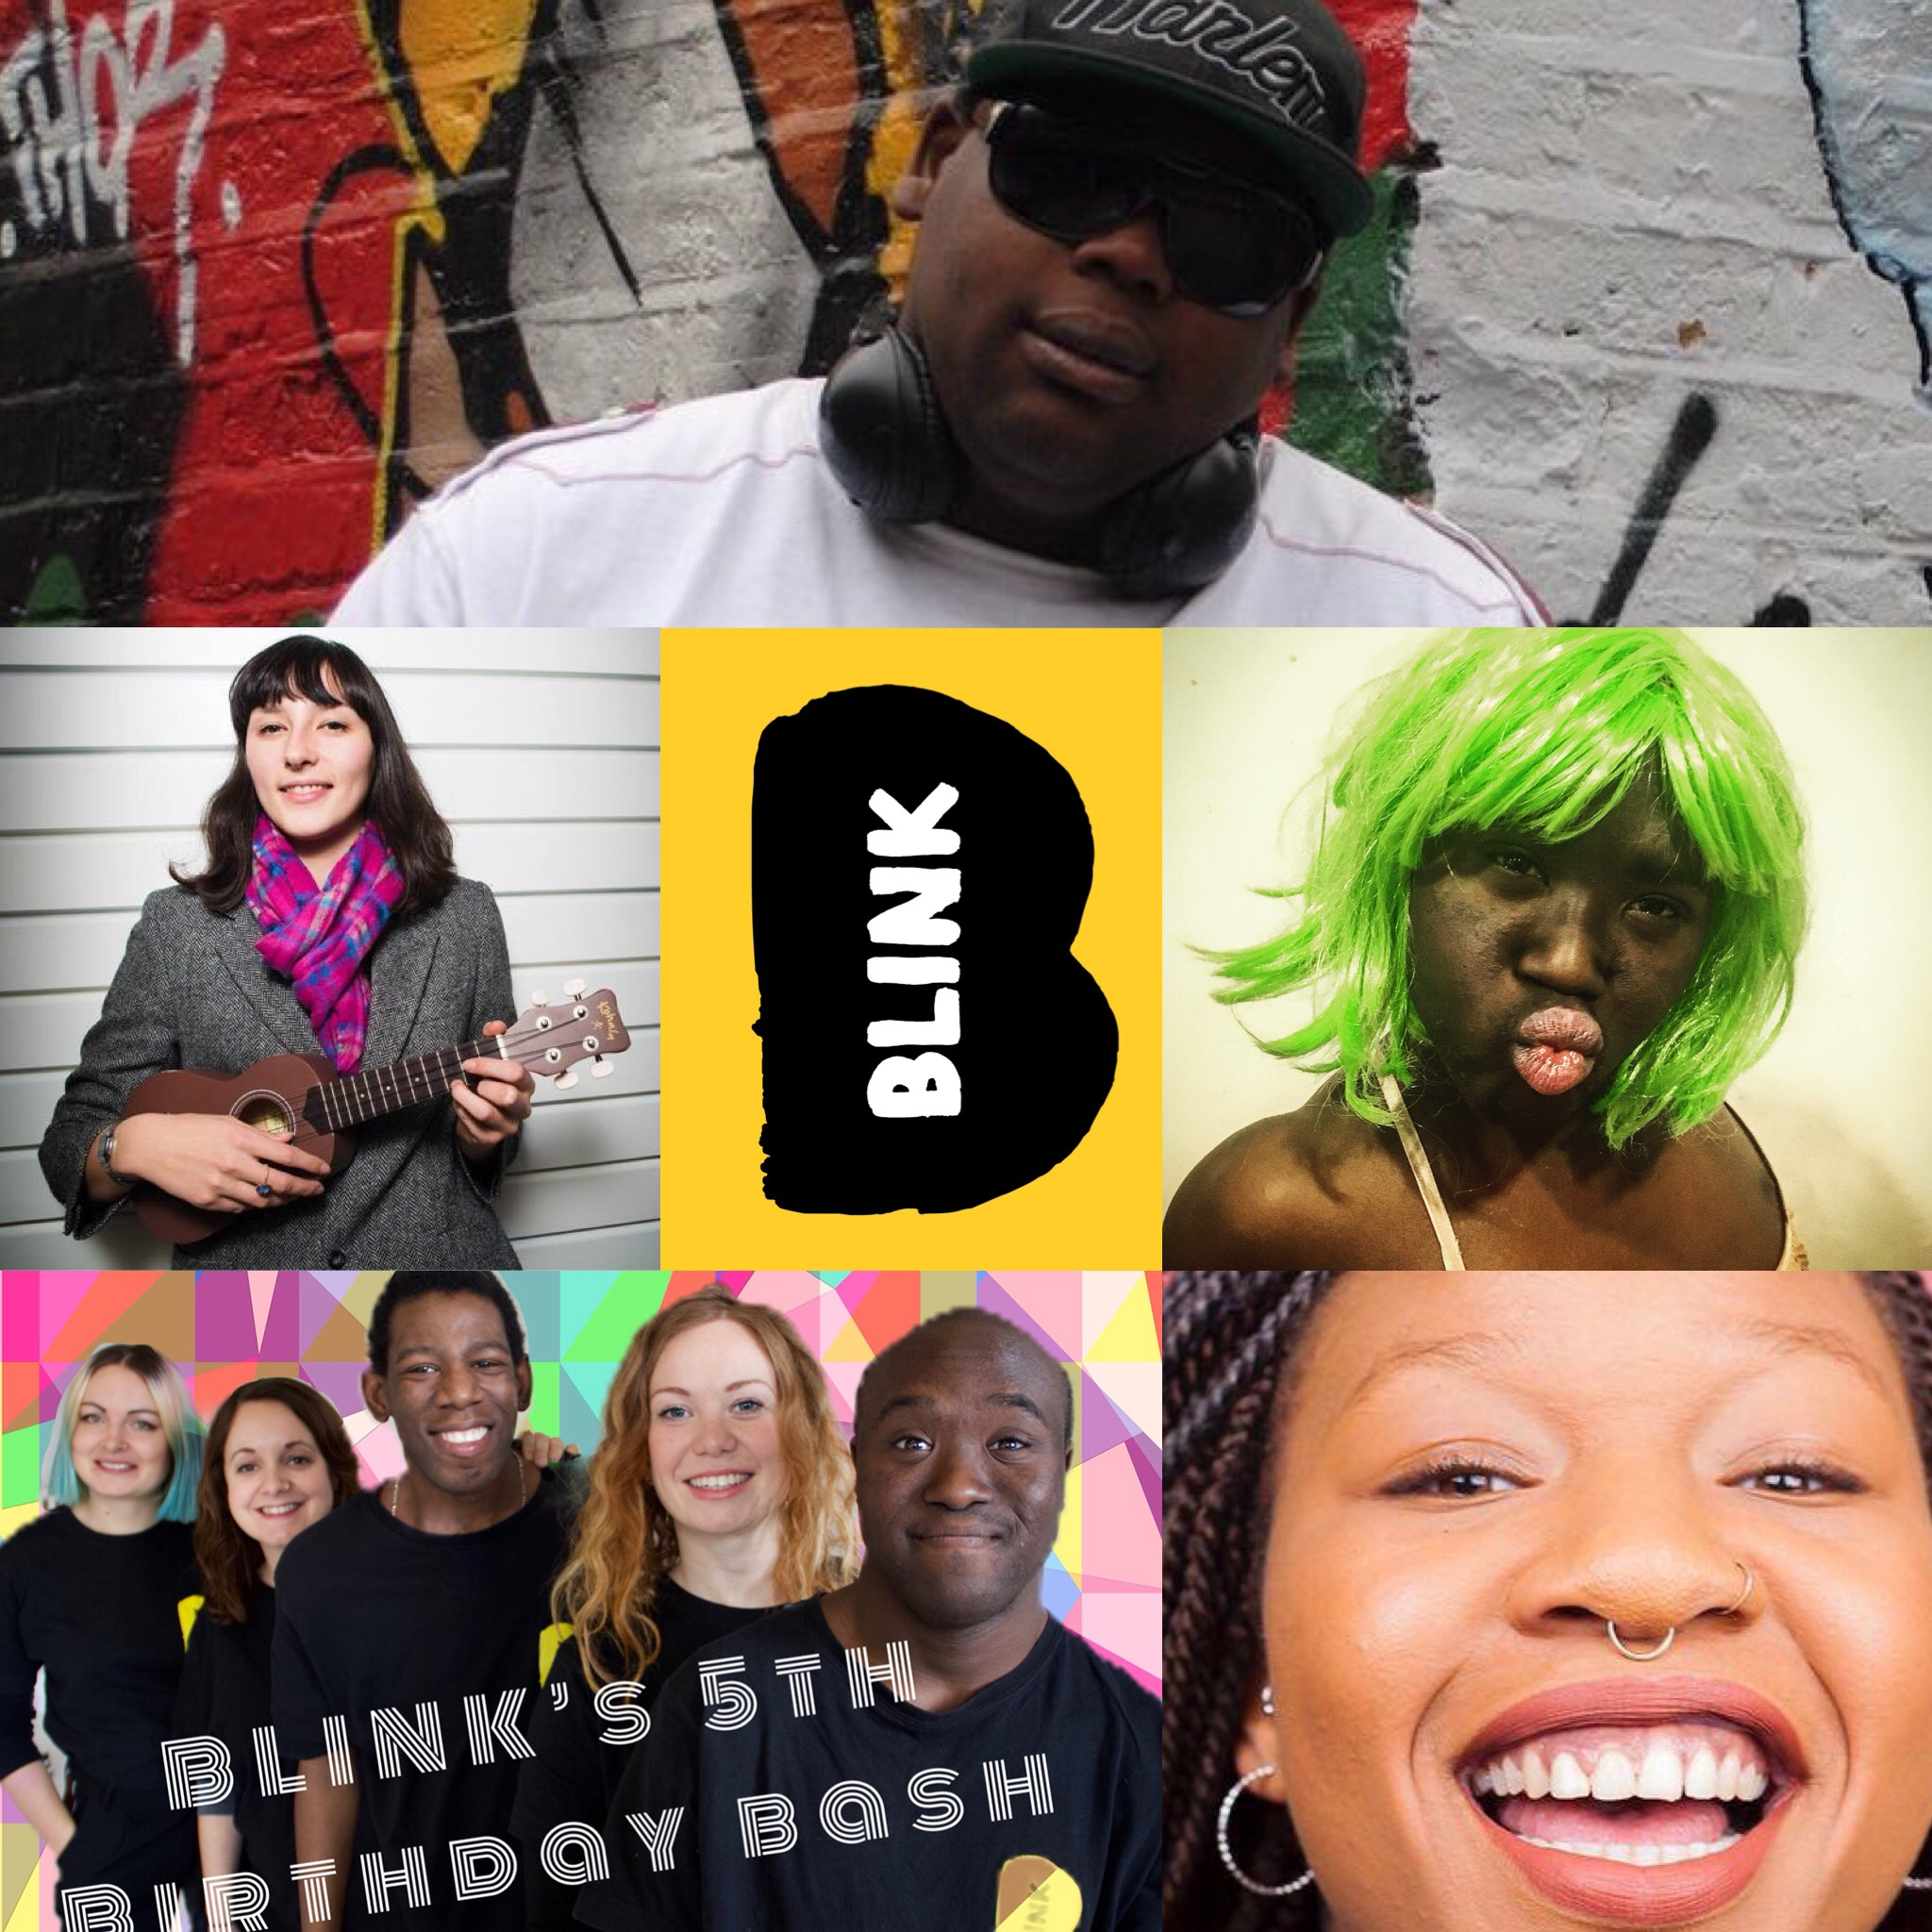 [description] a collage of 5 pictures centred around the BLINK logo. Top: Darren '2 decks' posing in a cap, sunglasses and headphones in front of a graffiti wall. Middle Left: Sylvia with her Ukulele smiling against a white backdrop, Centre right; Francesca pouting in a green wig, Bottom left: the BLINK team against a colourful geometric backdrop, Bottom Right: a close up of Tanya with a huge smile nose piercings, glowing skin and beautiful braids.